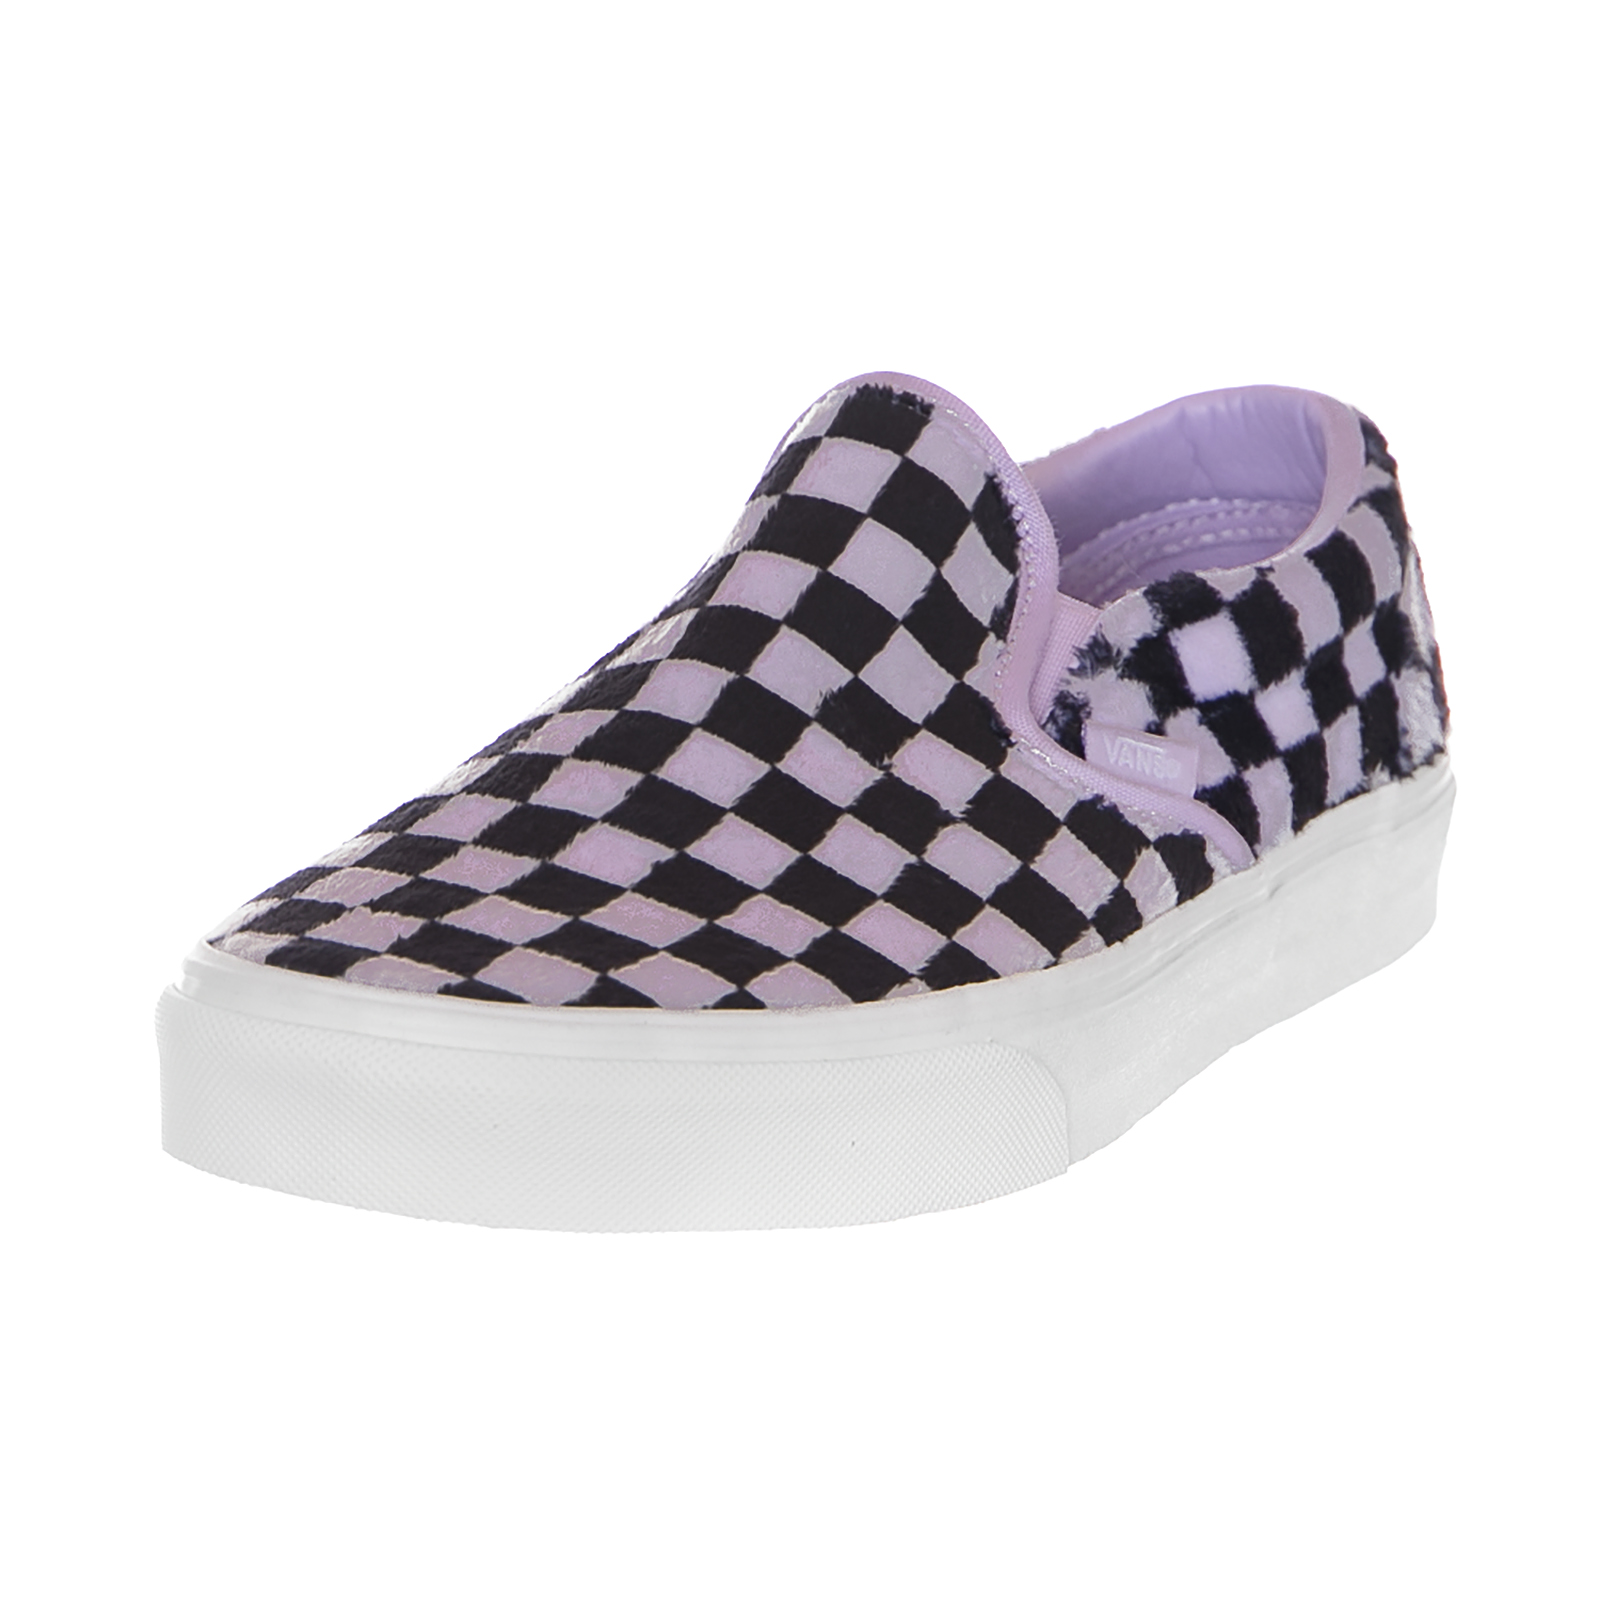 Vans Sneakers Classic Slip-On (Furry Checked) Pastel purplec Black Multicolour